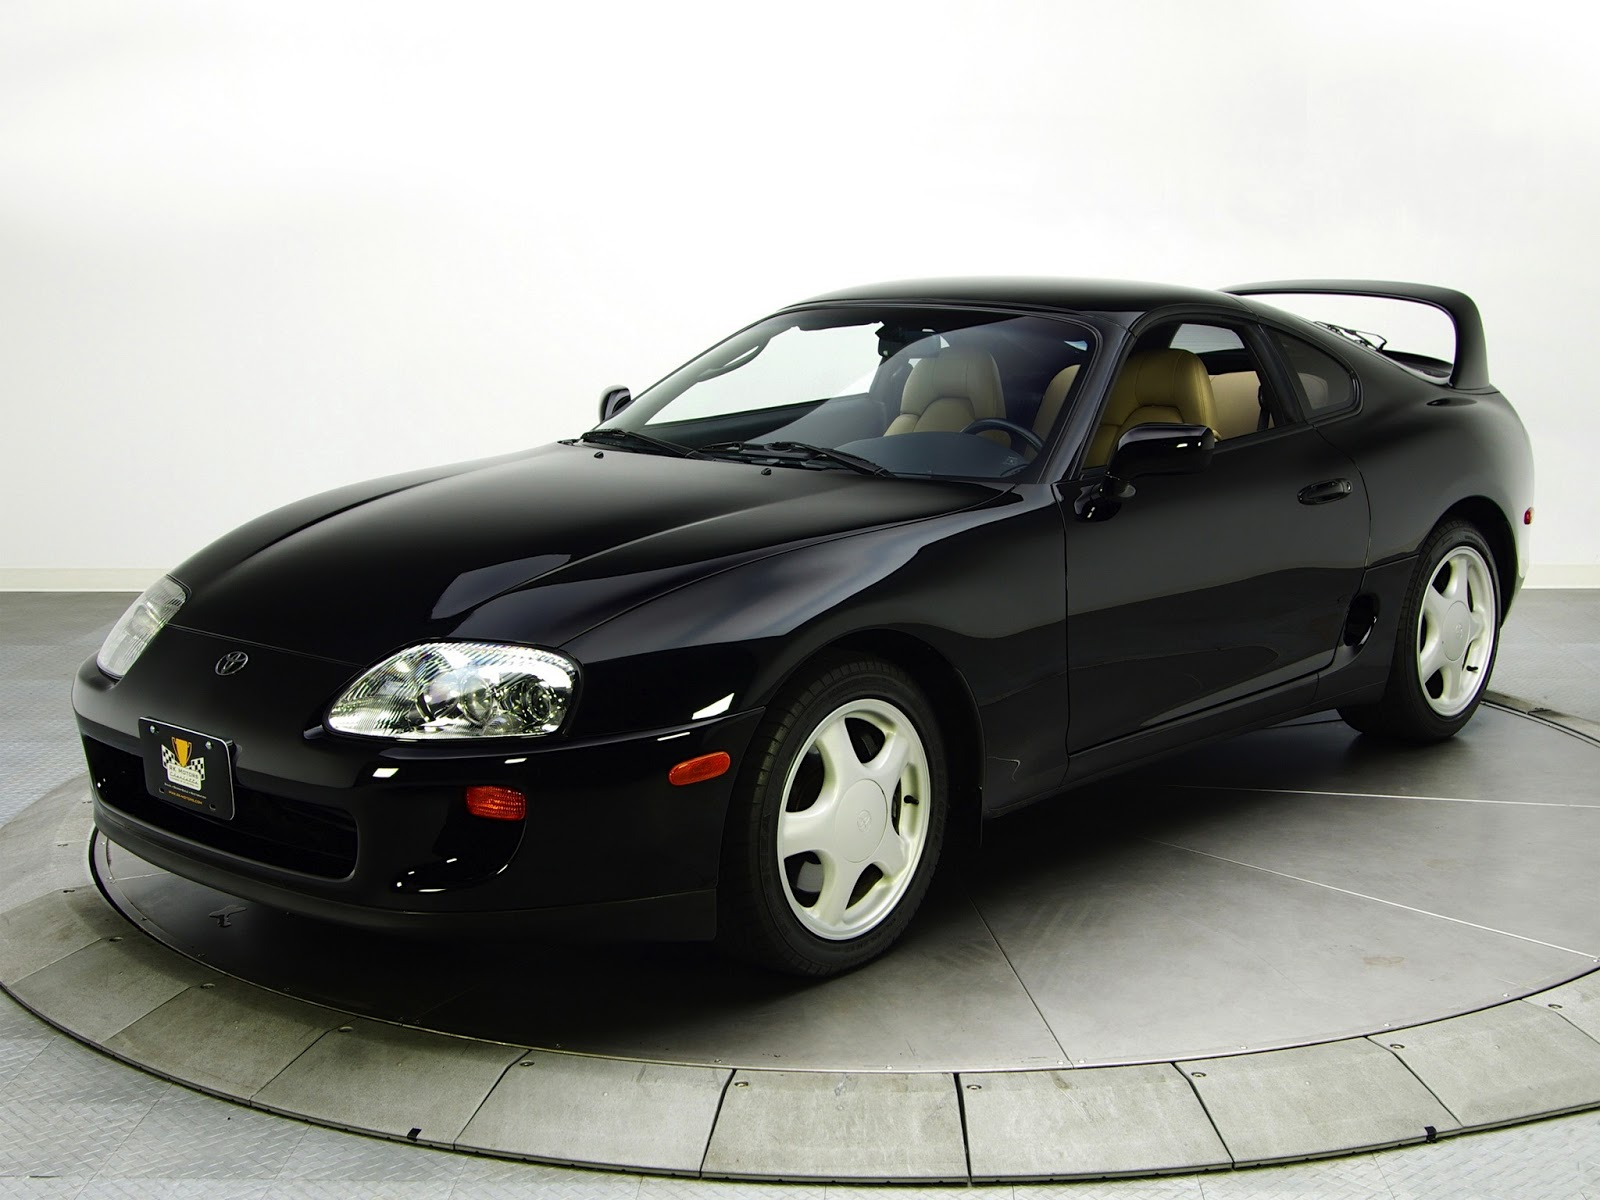 hight resolution of supra sales to canada ceased in 1996 and to the us in 1998 production continued in japan until august 2002 ceasing owing to restrictive emission